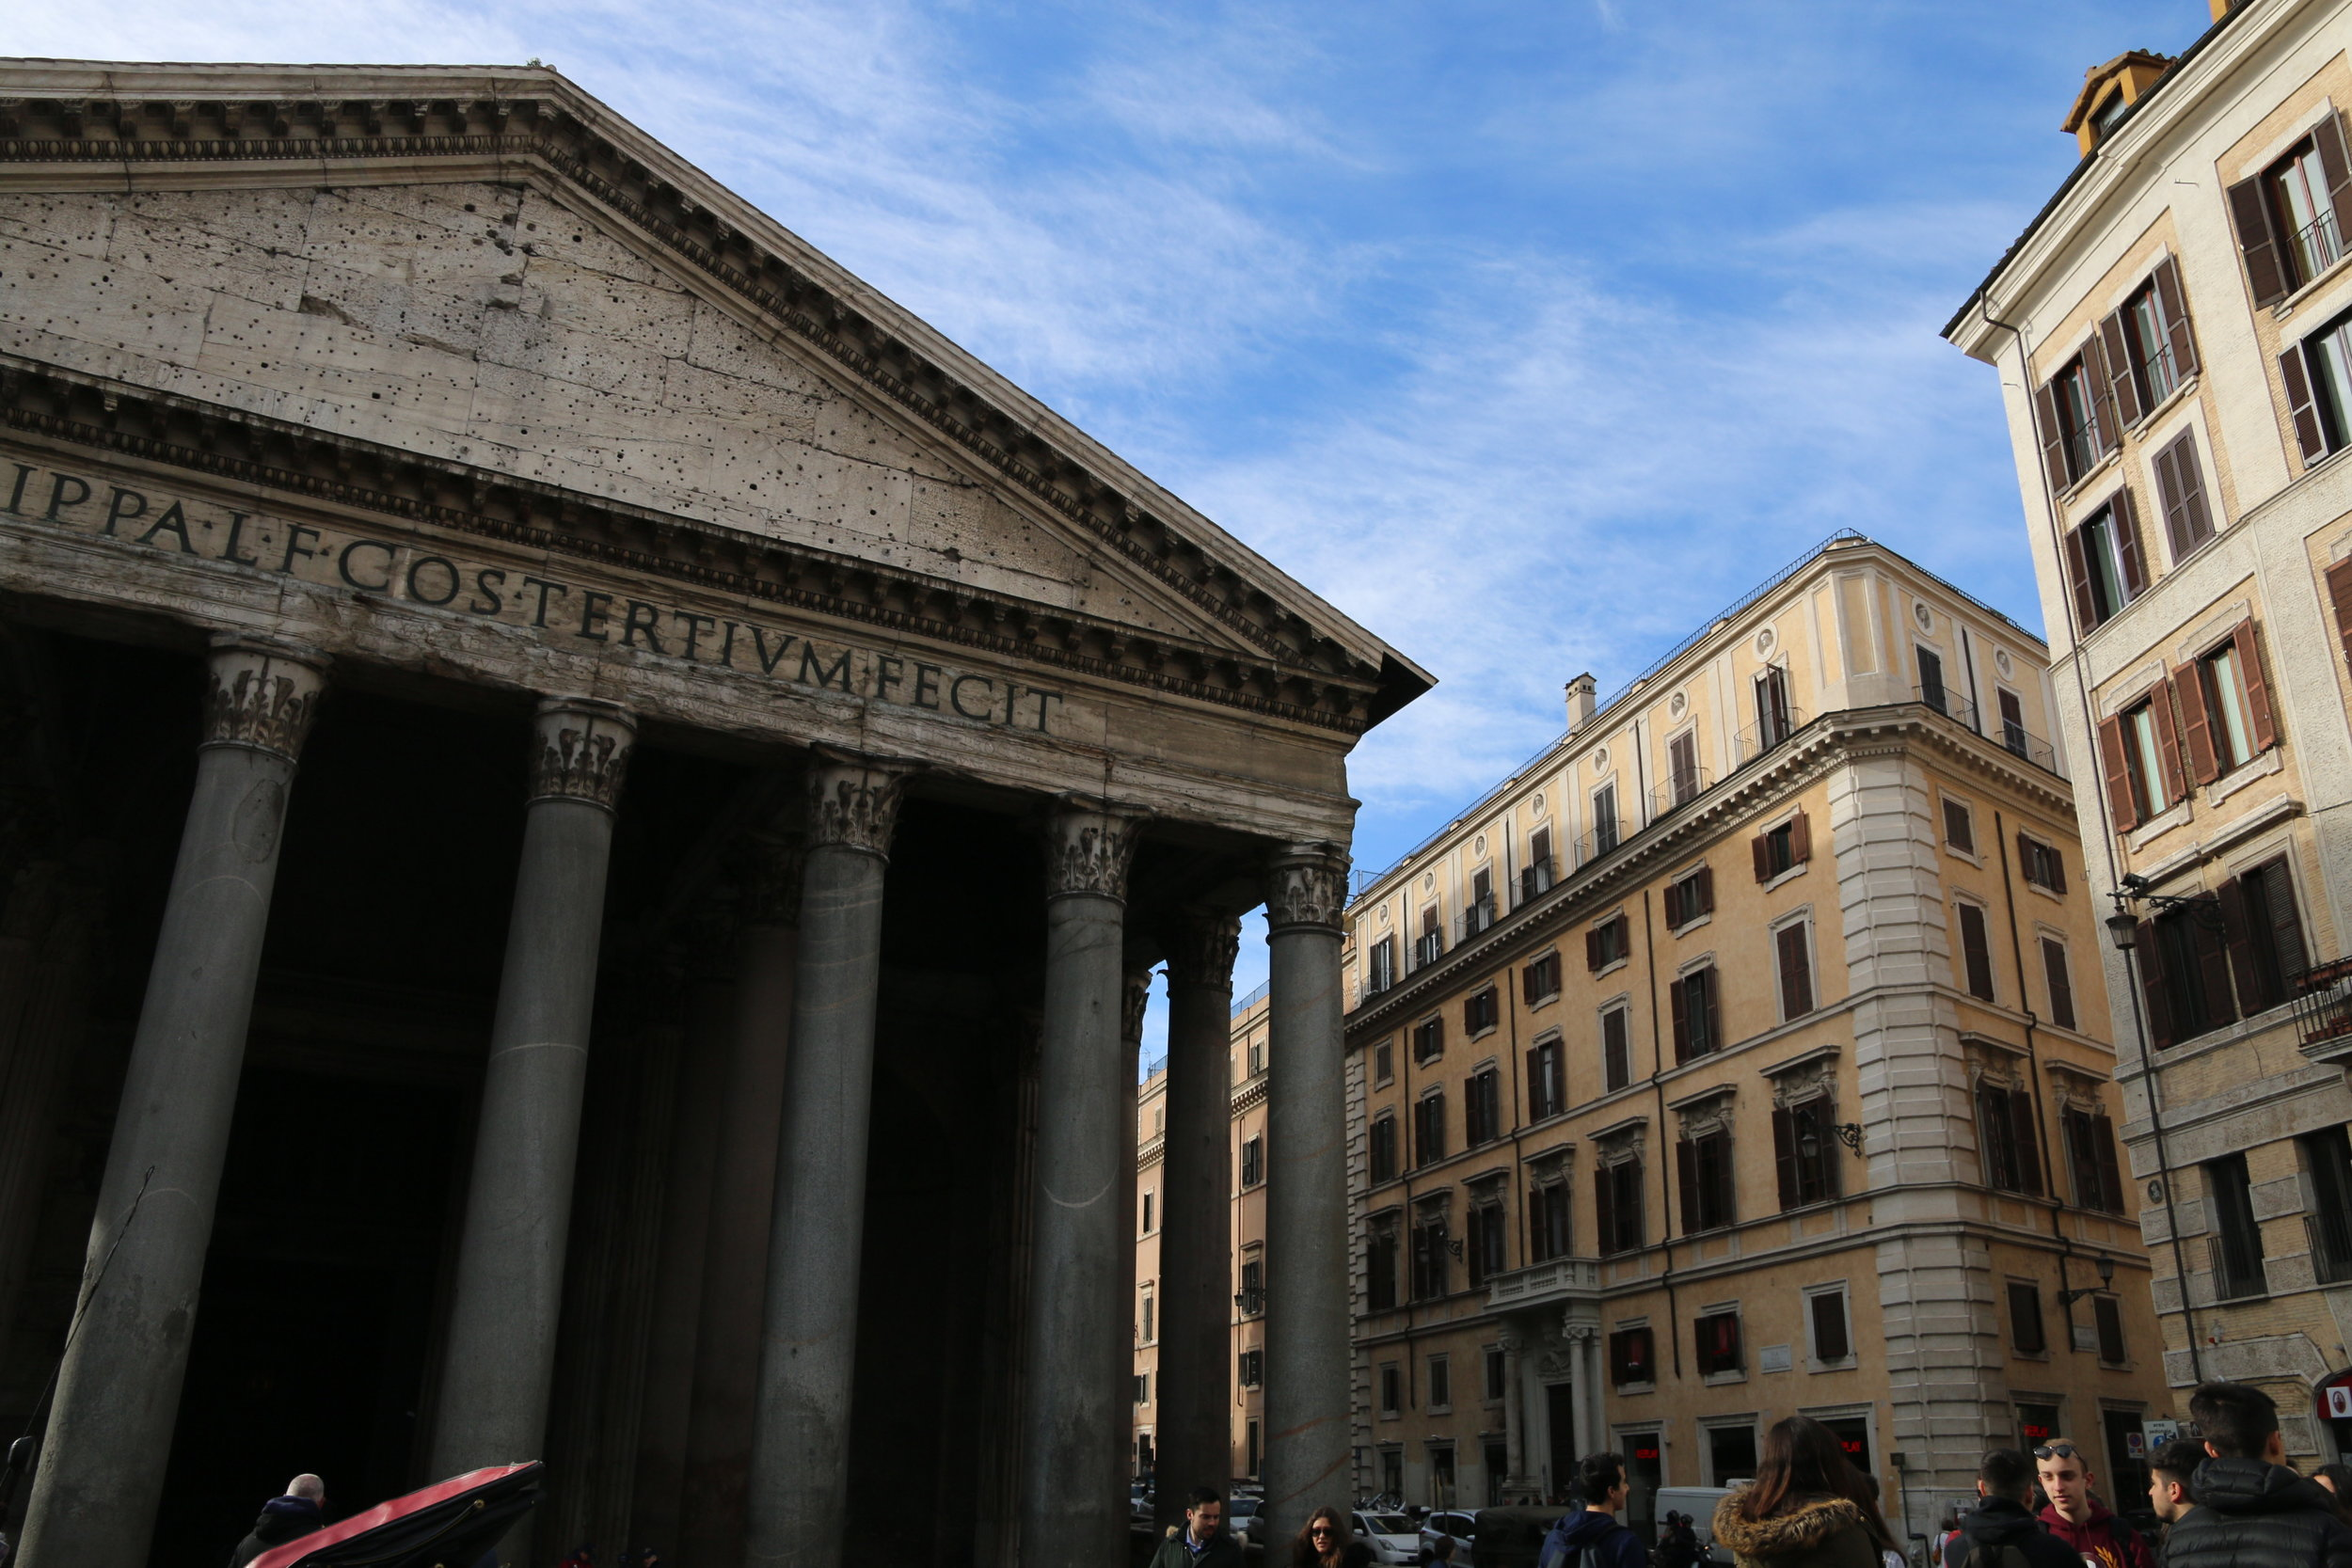 Pantheon - the most complete building of Ancient Rome (125 AD)